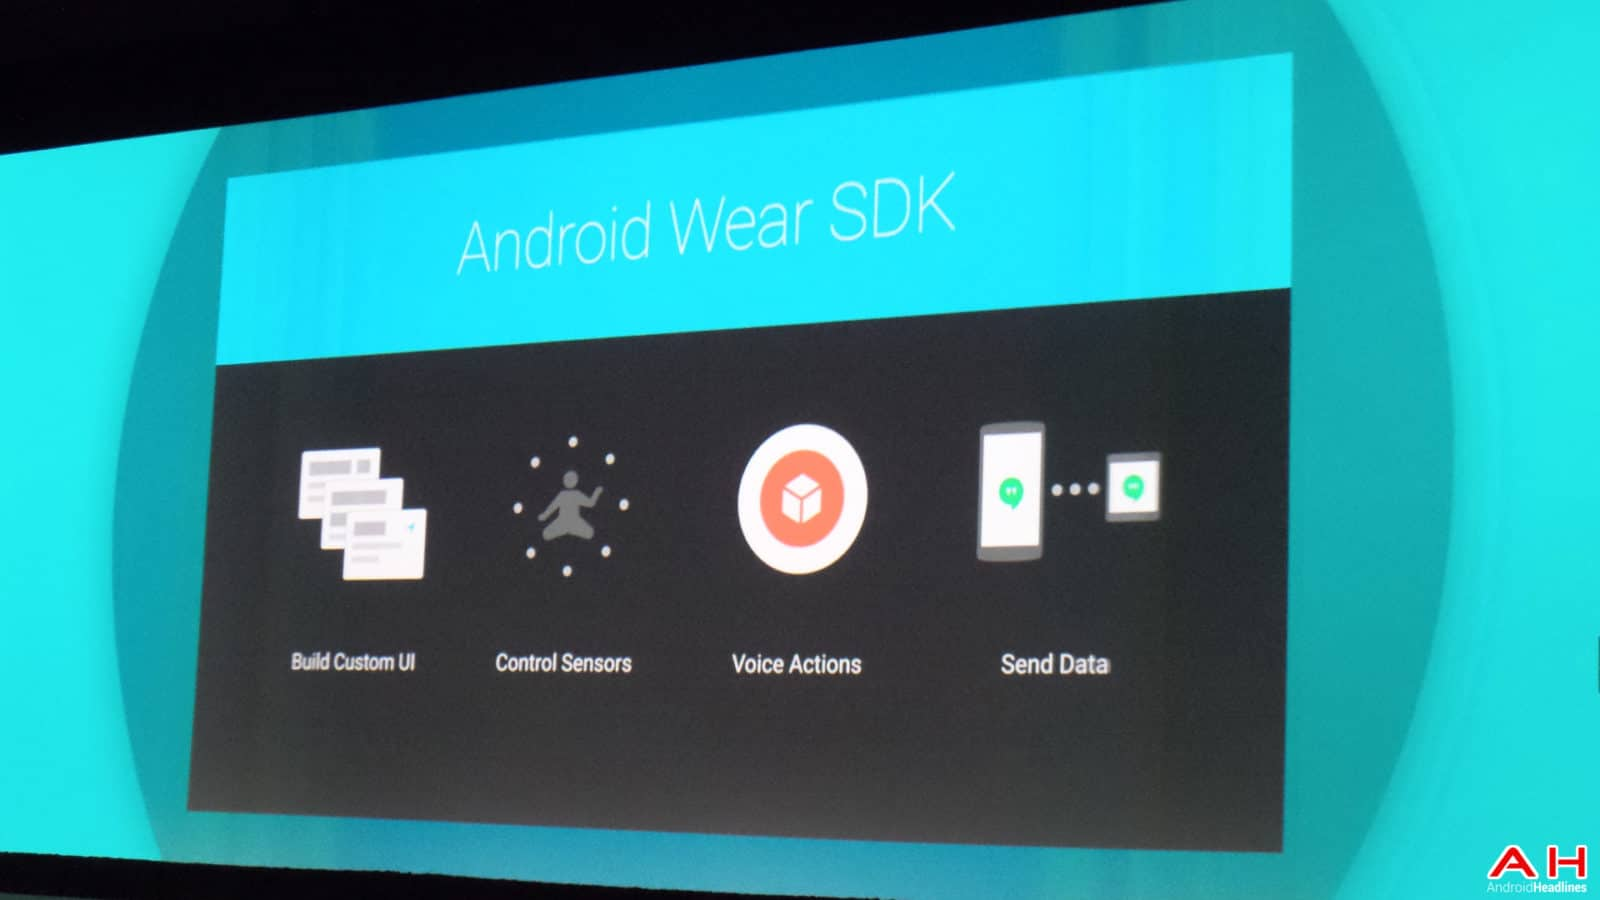 AH Google IO 2014 (305 of 18) Android Wear